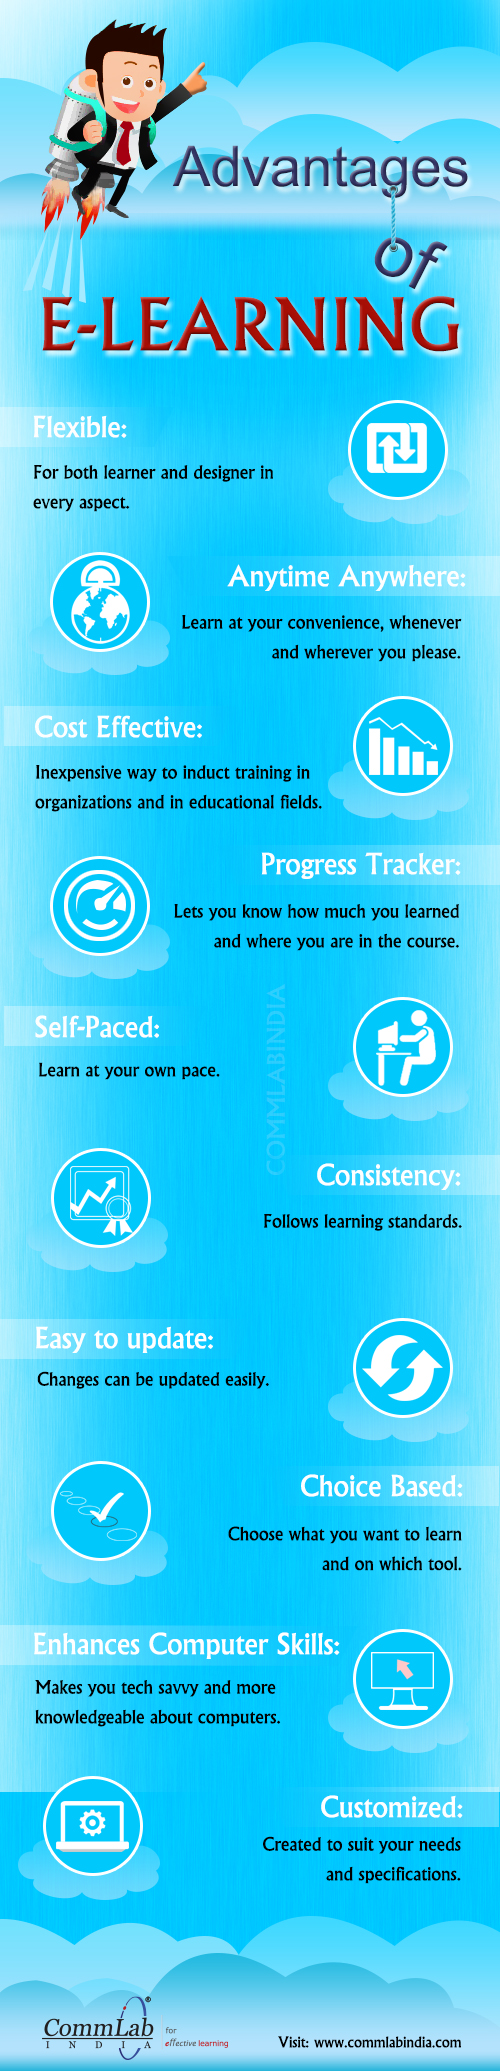 Advantages of E-learning - An Infographic